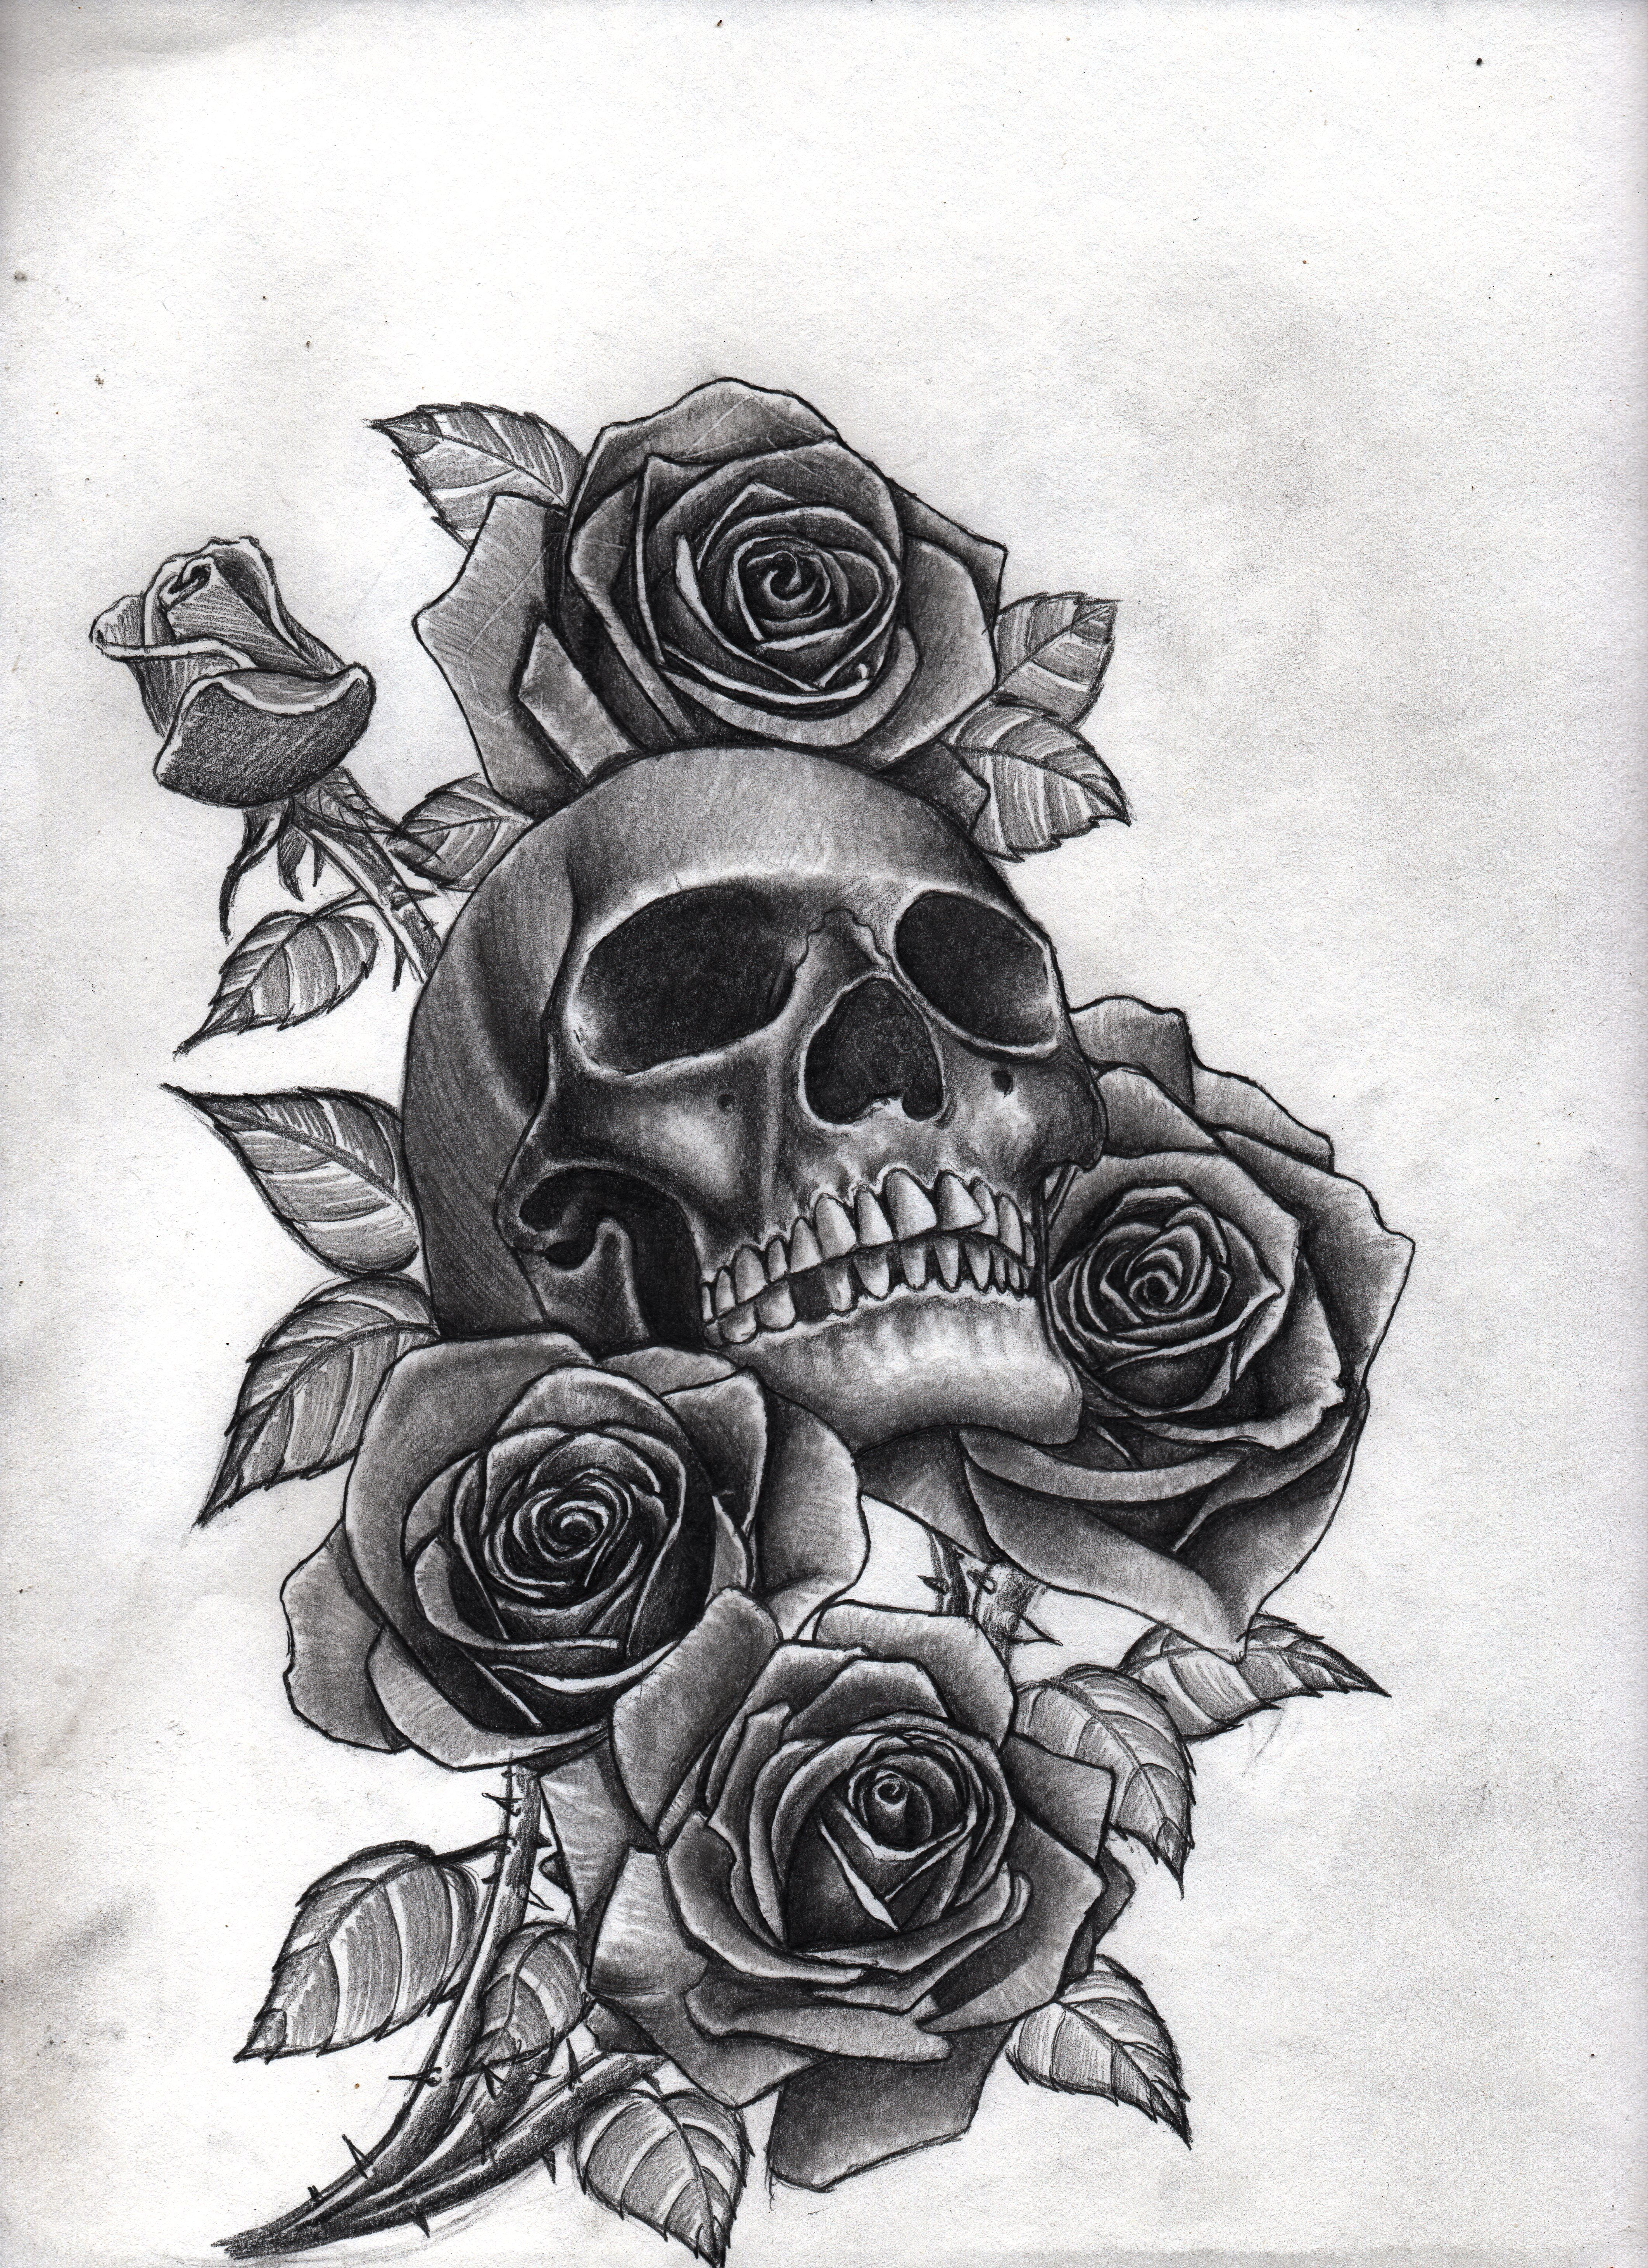 roses_and_skull_by_bobby_castaldi_art-d8jo10m.jpg 4,250 ...